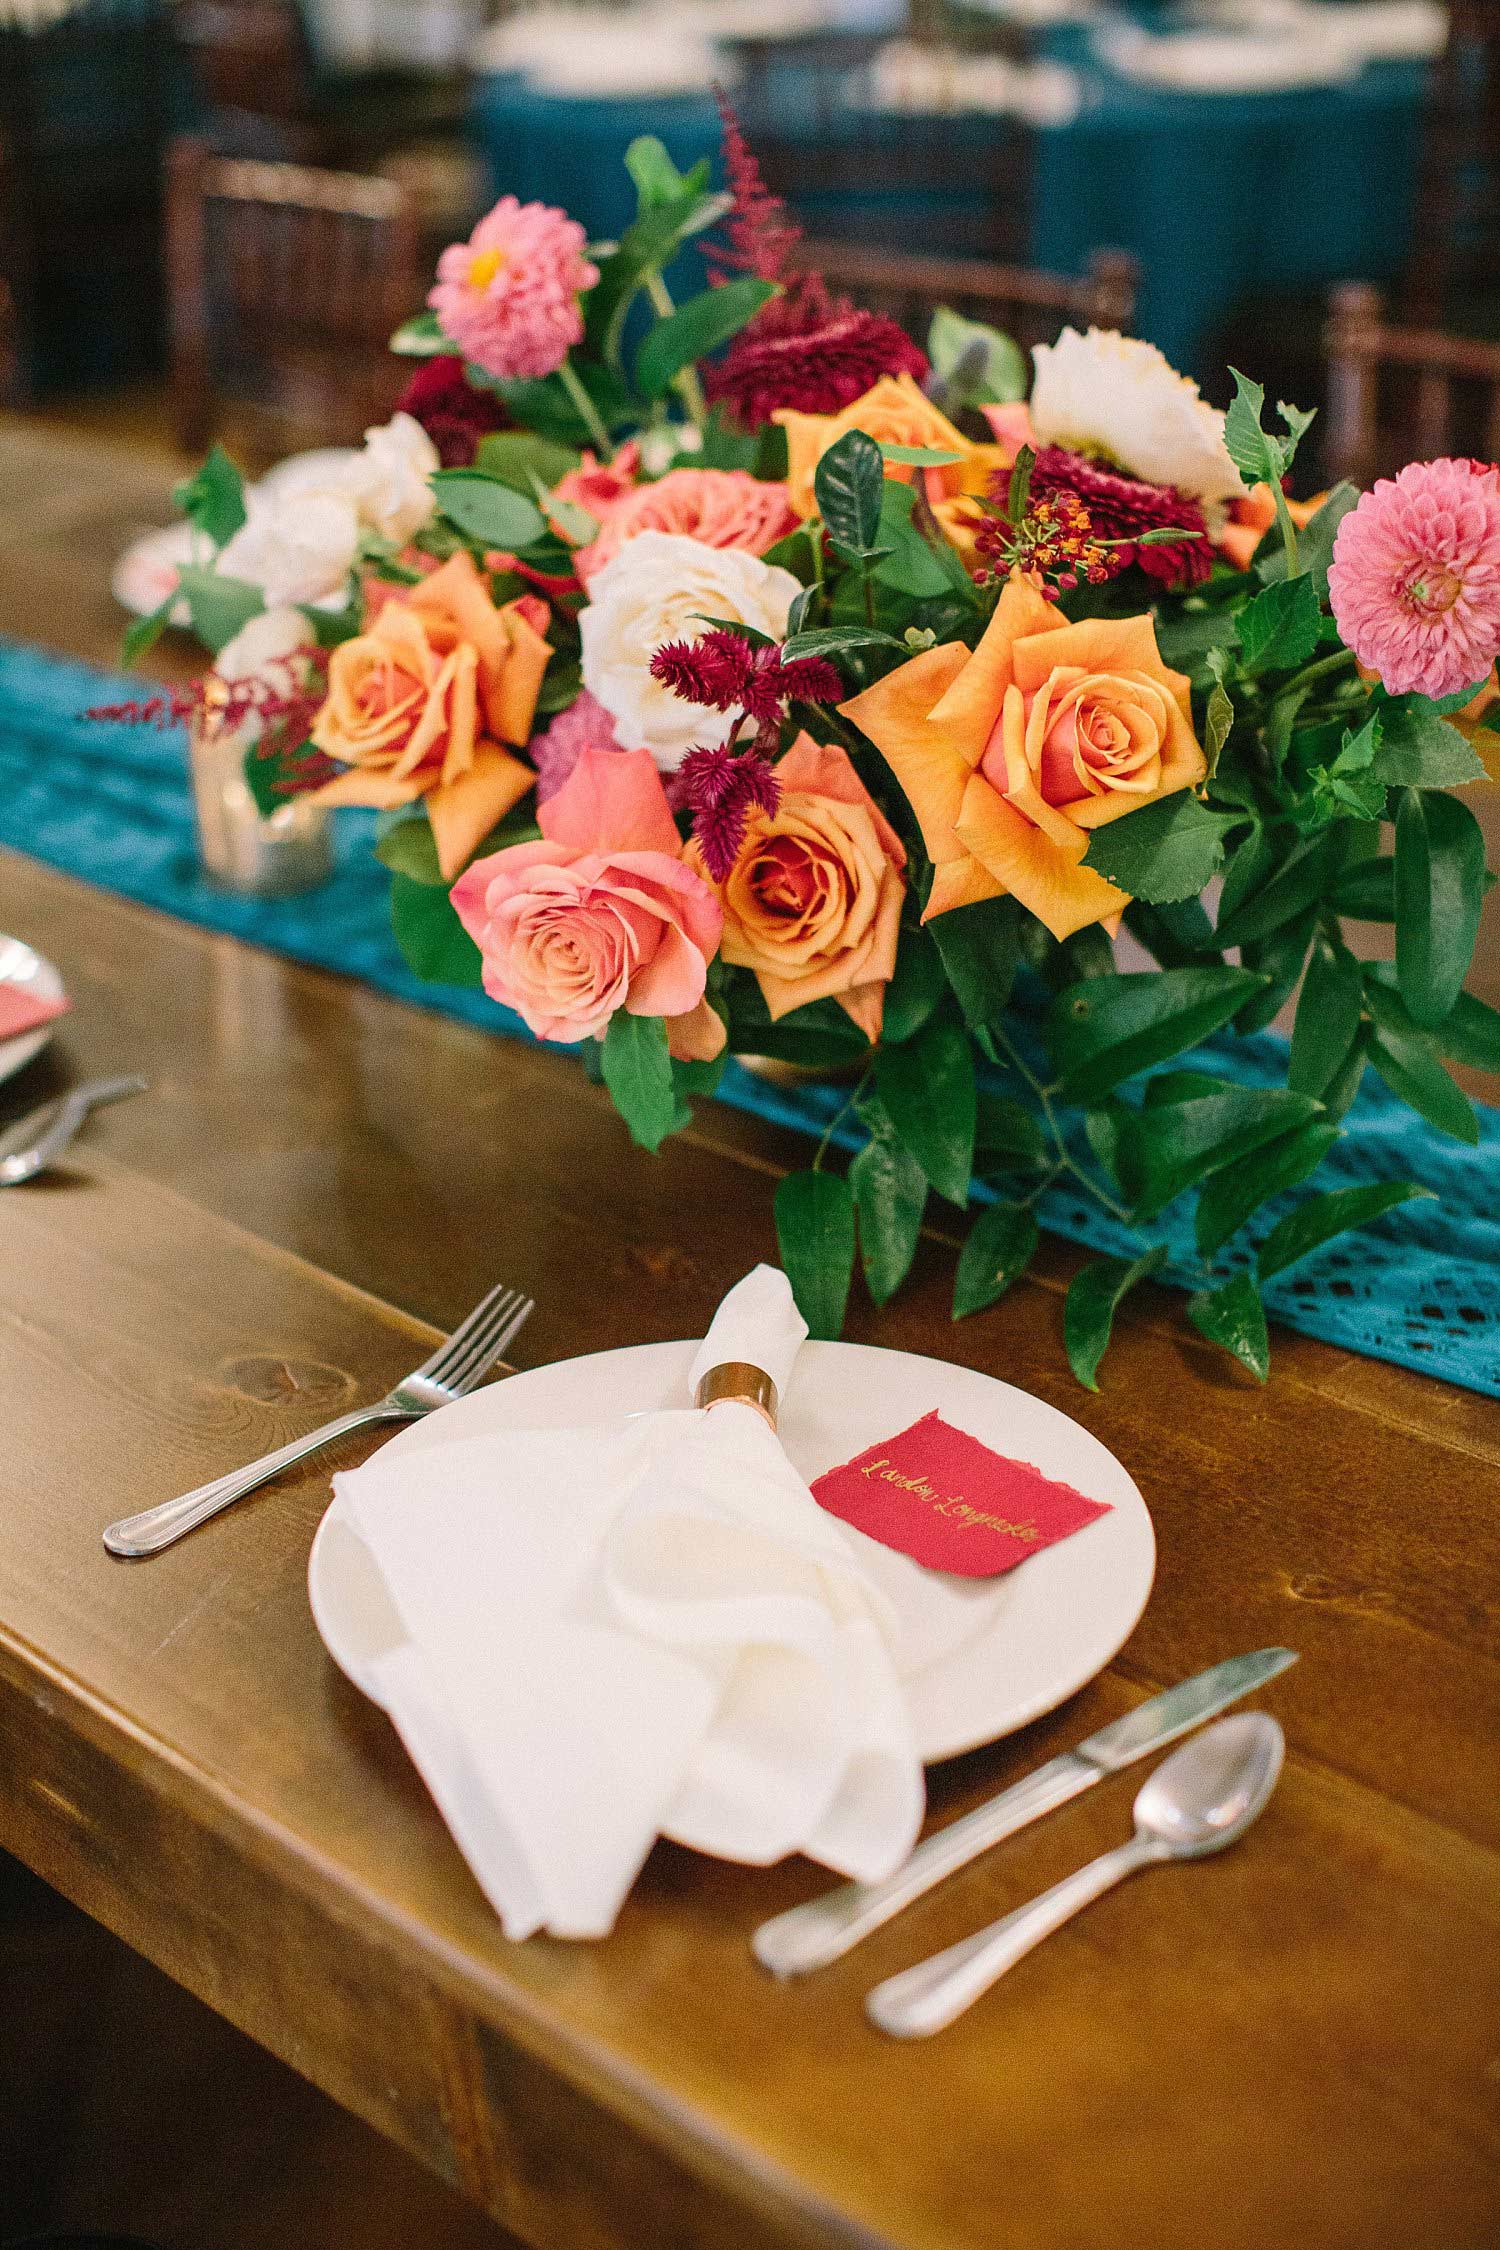 Napkin with copper napkin ring on white plate with a red escort card